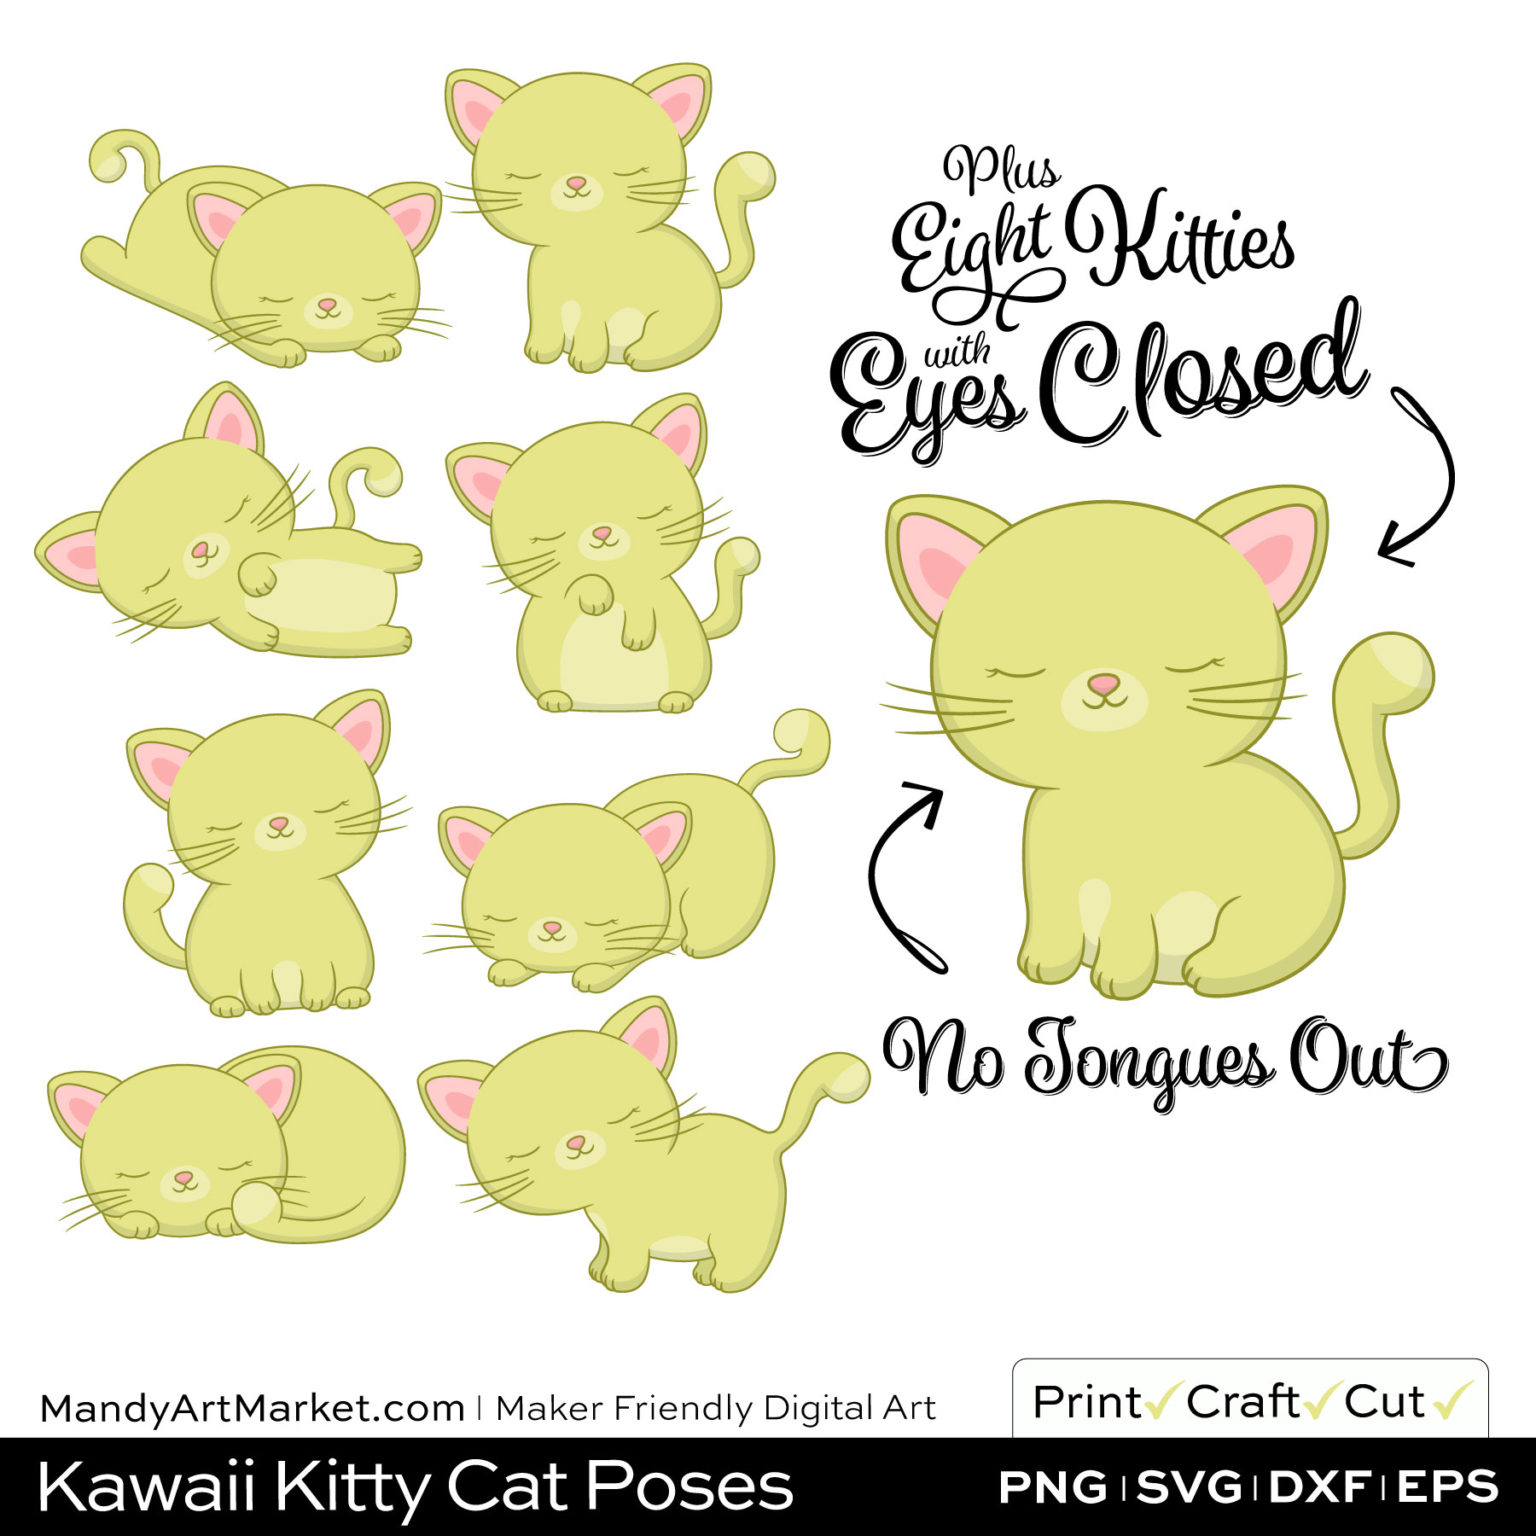 Celery Green Kawaii Kitty Cat Poses Clipart PNGs Included in Download